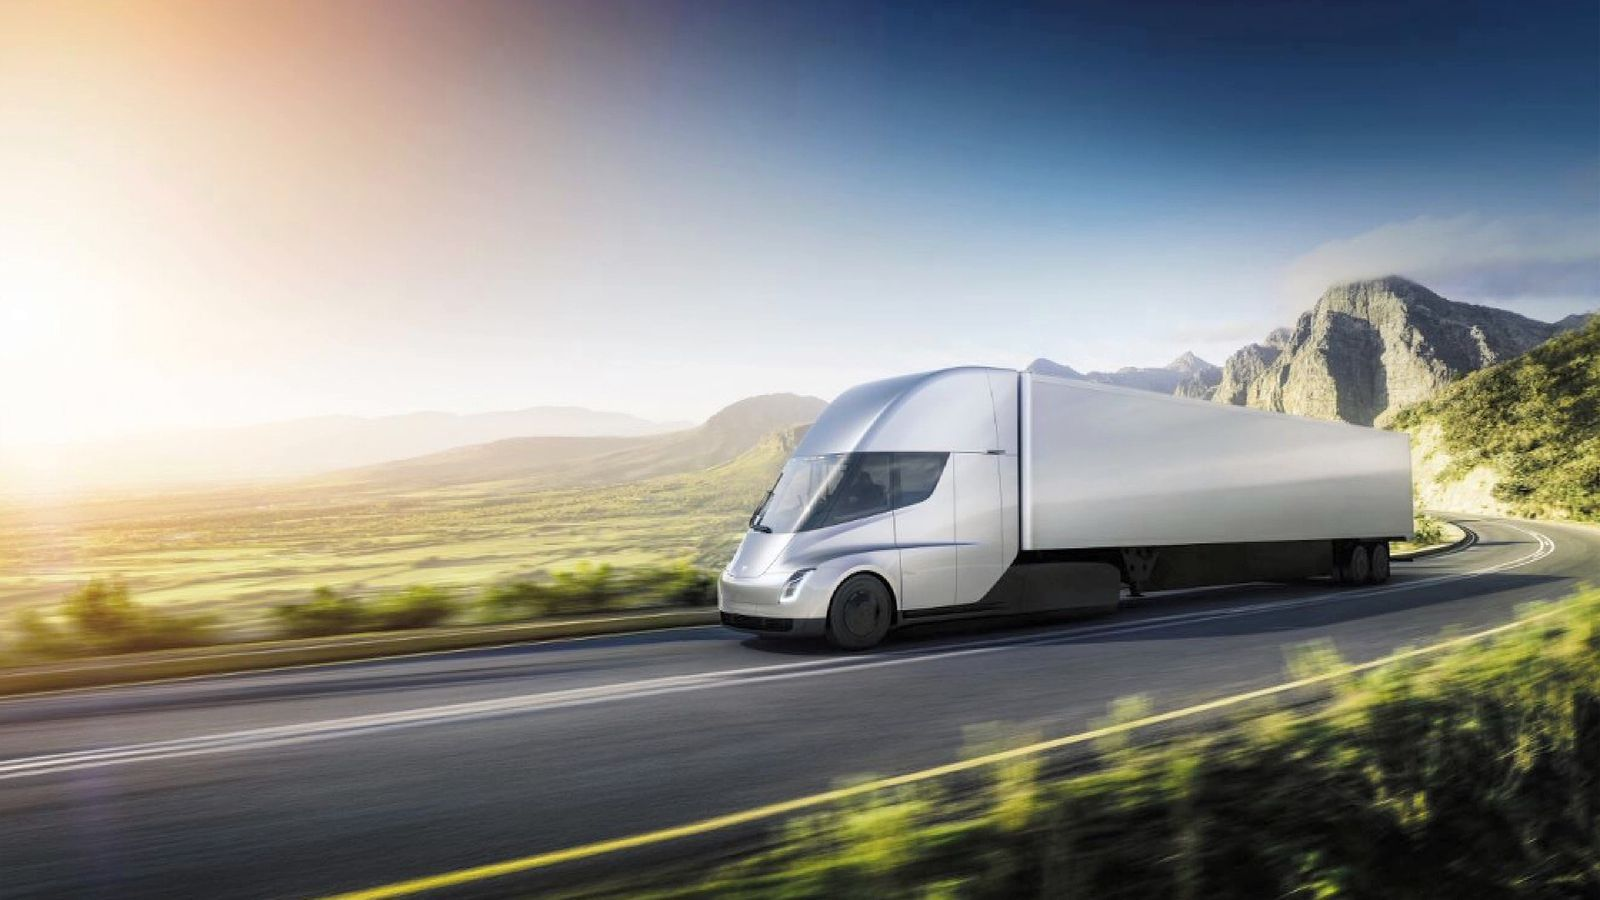 Car In Space Wallpaper Elon Musk Elon Musk Unveils Tesla Semi Electric Truck In Latest